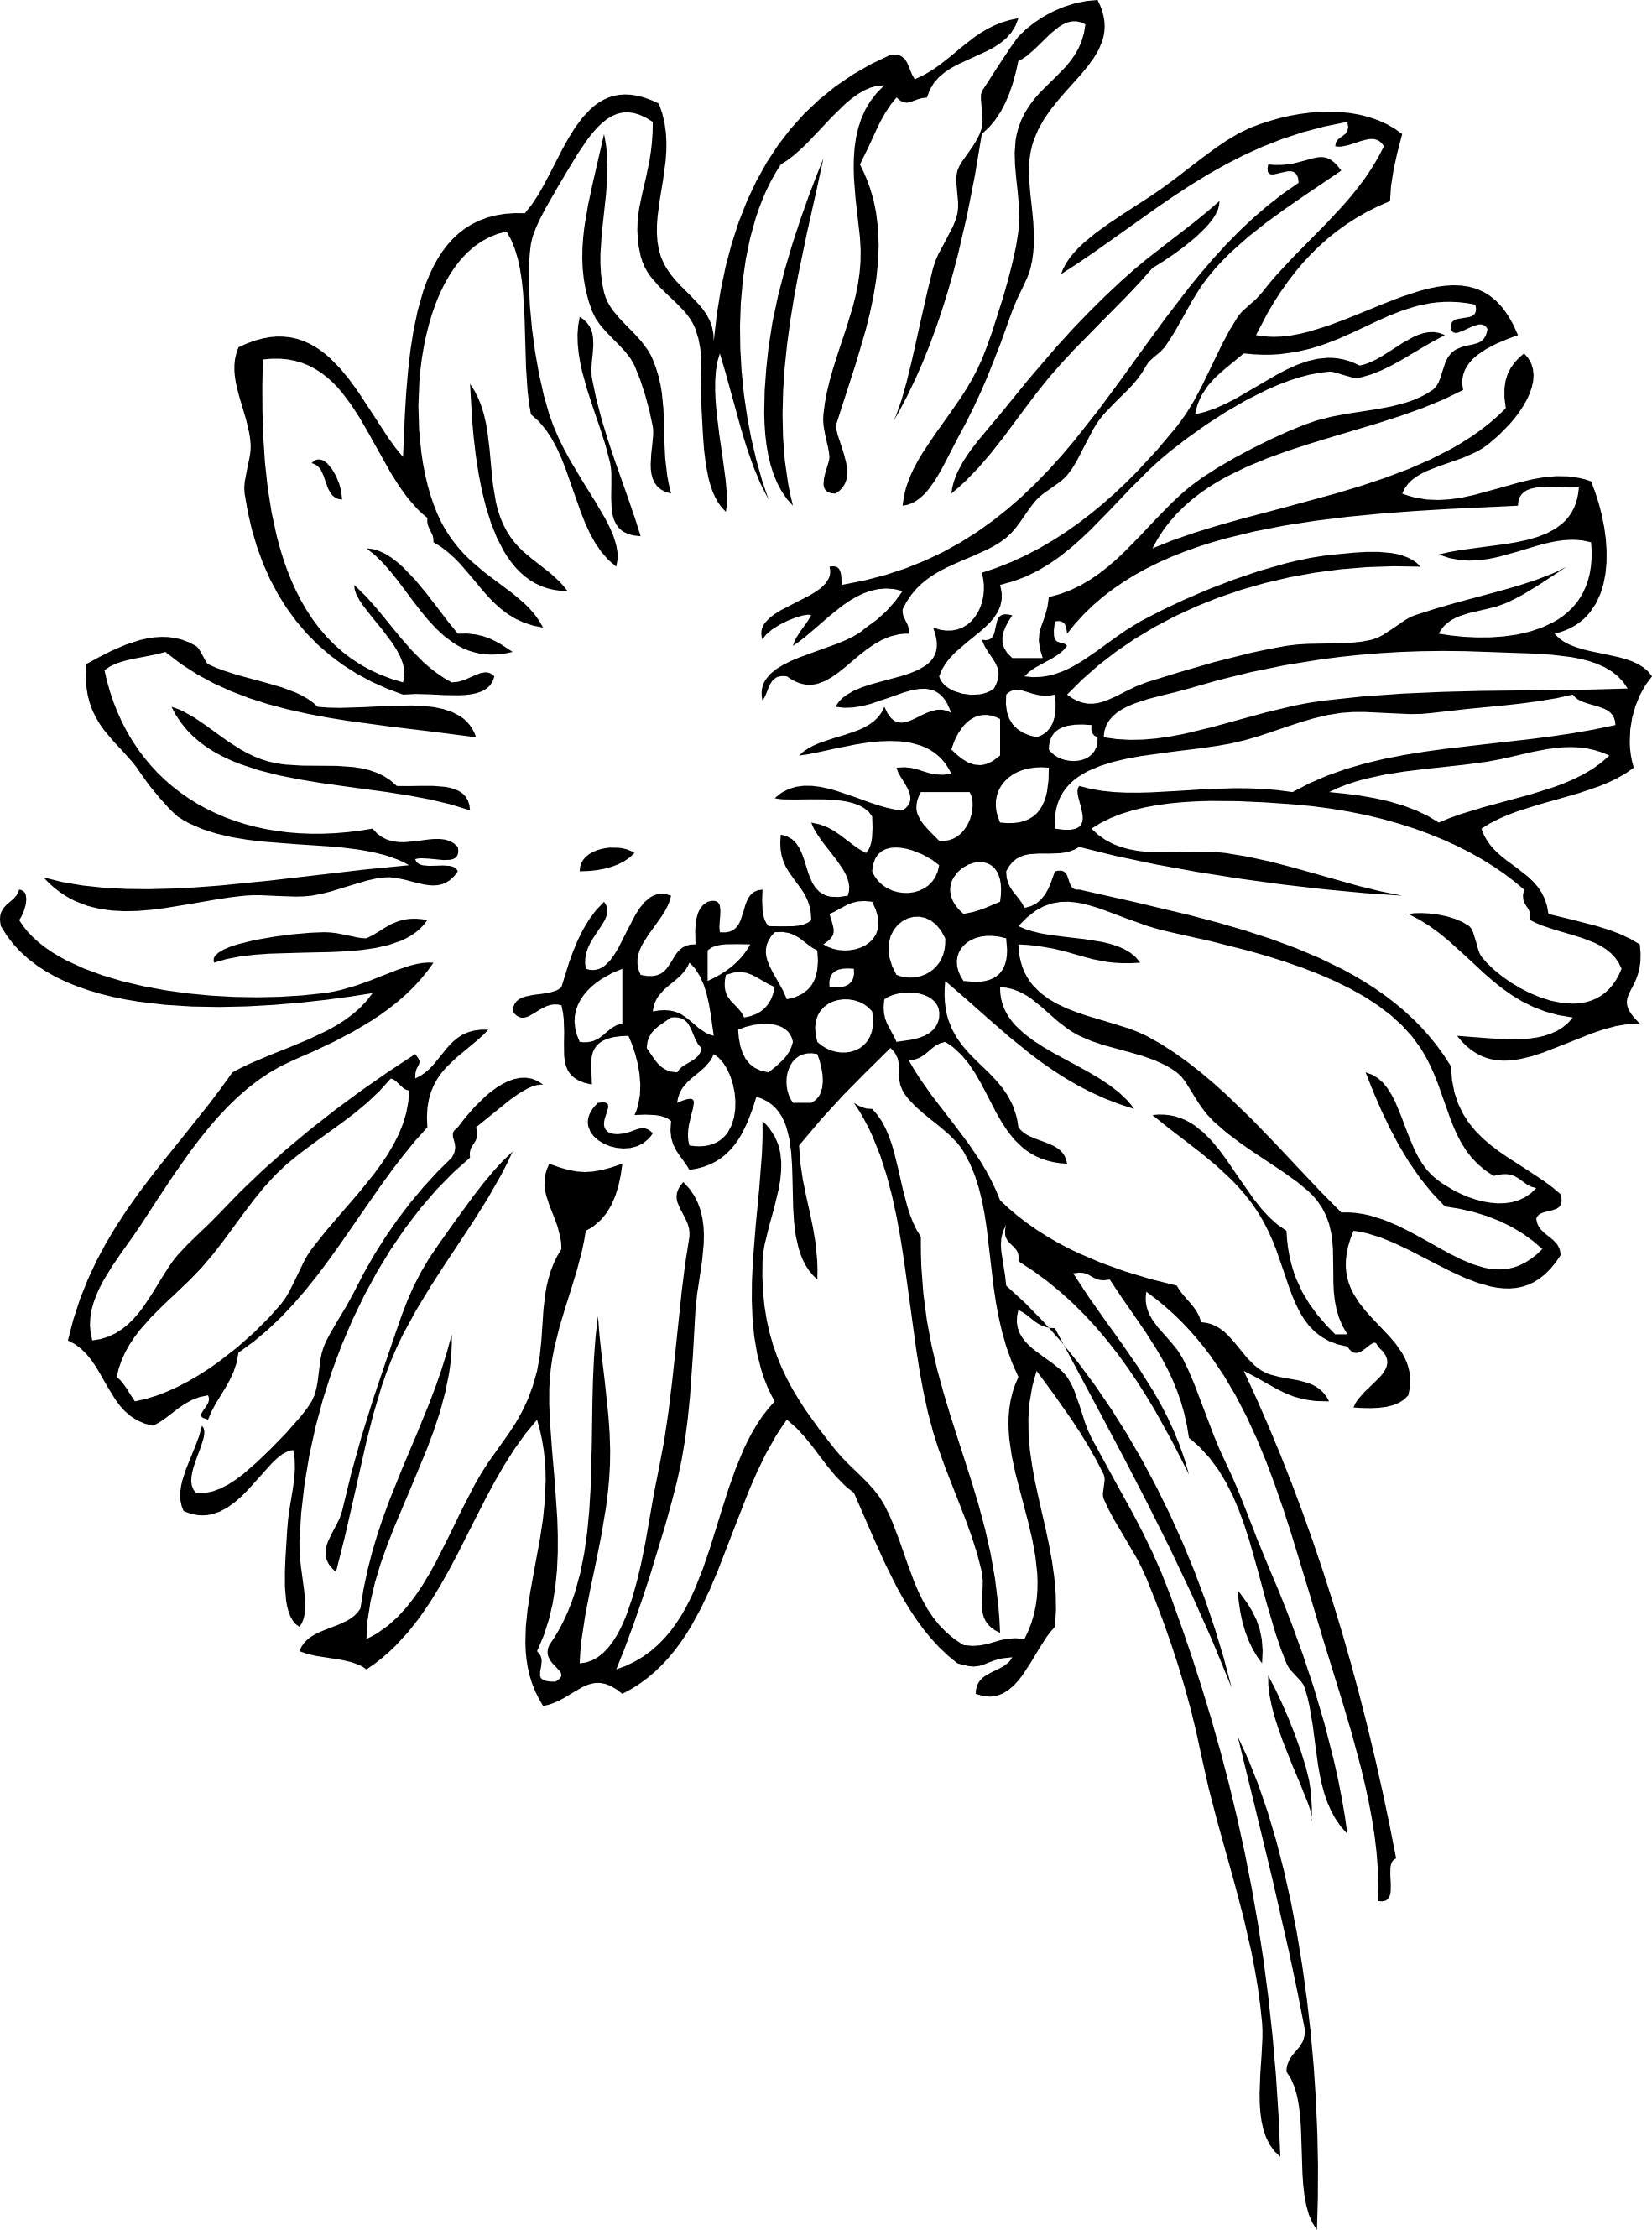 Clipart black and white flower design graphic transparent stock Black And White Drawing Designs at GetDrawings.com | Free for ... graphic transparent stock